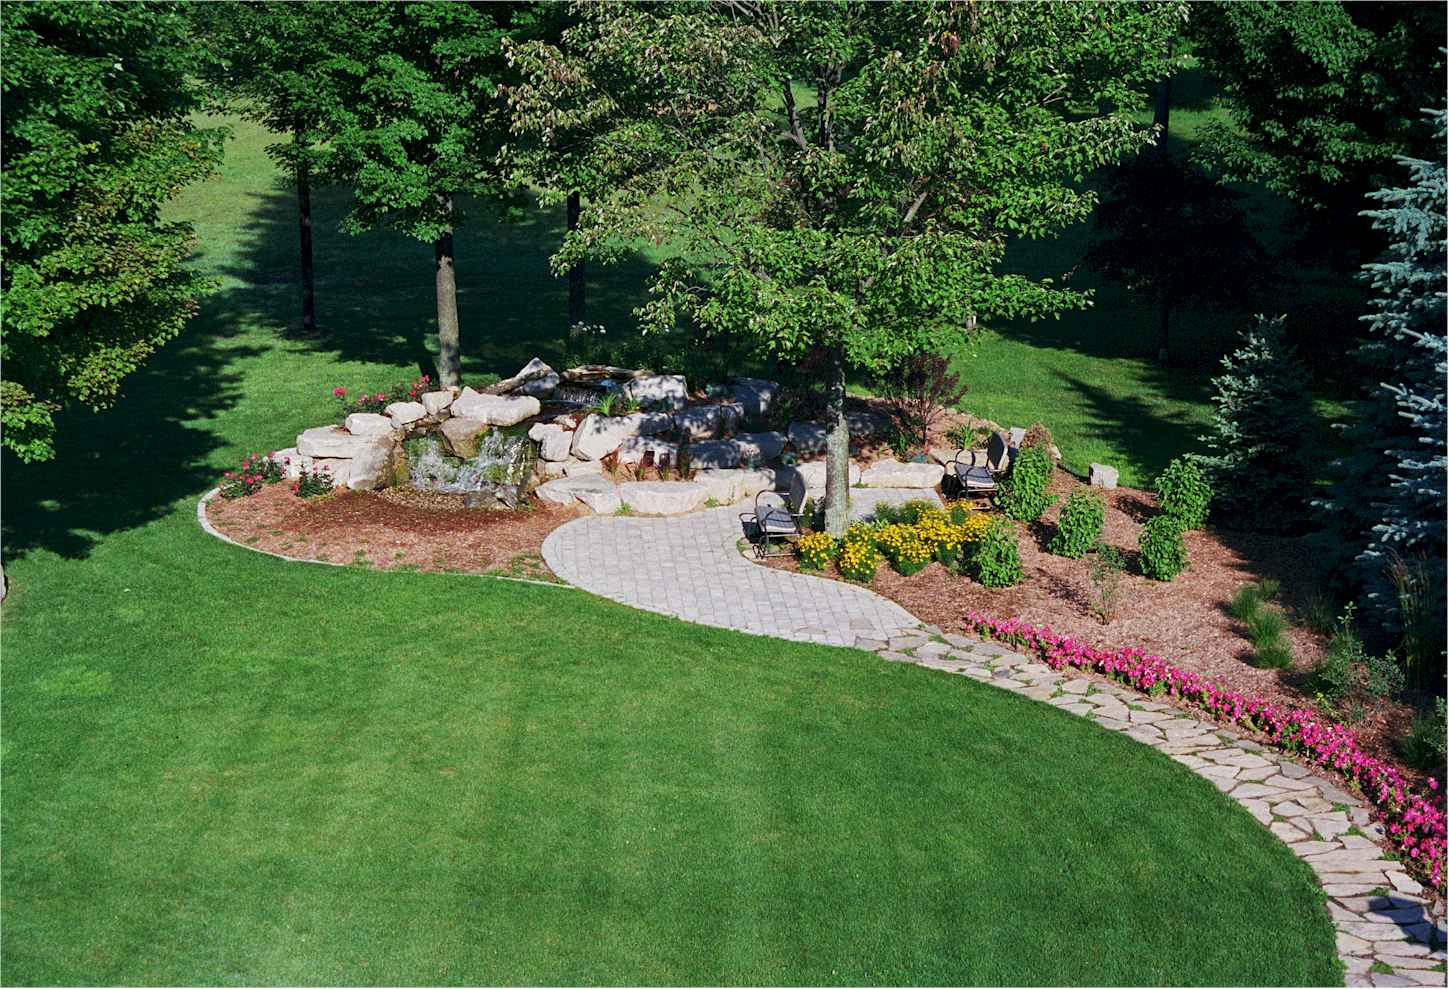 Wallpaper backgrounds landscaping for Best home lawn designs